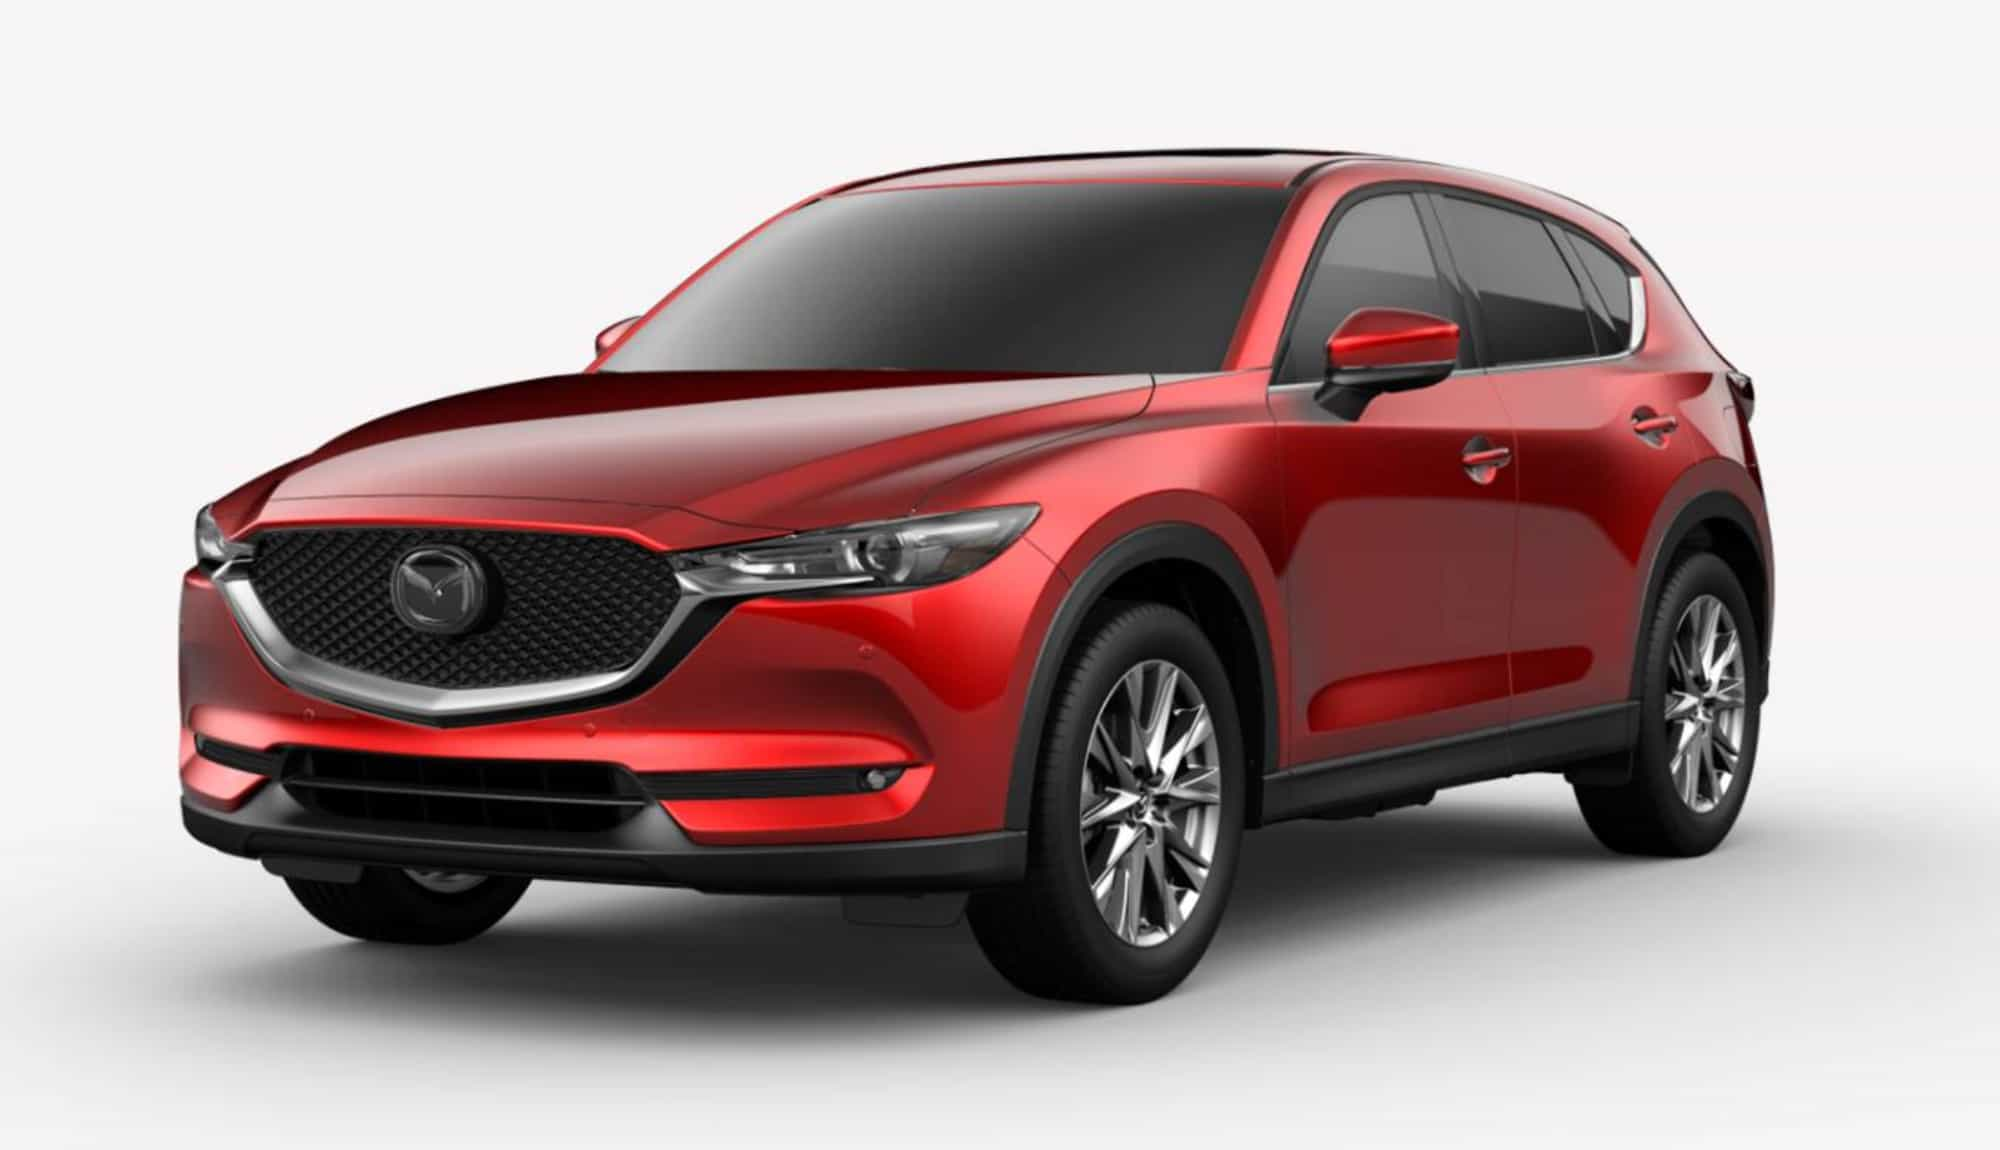 2020 CX-5, Soul Red Crystal Metallic